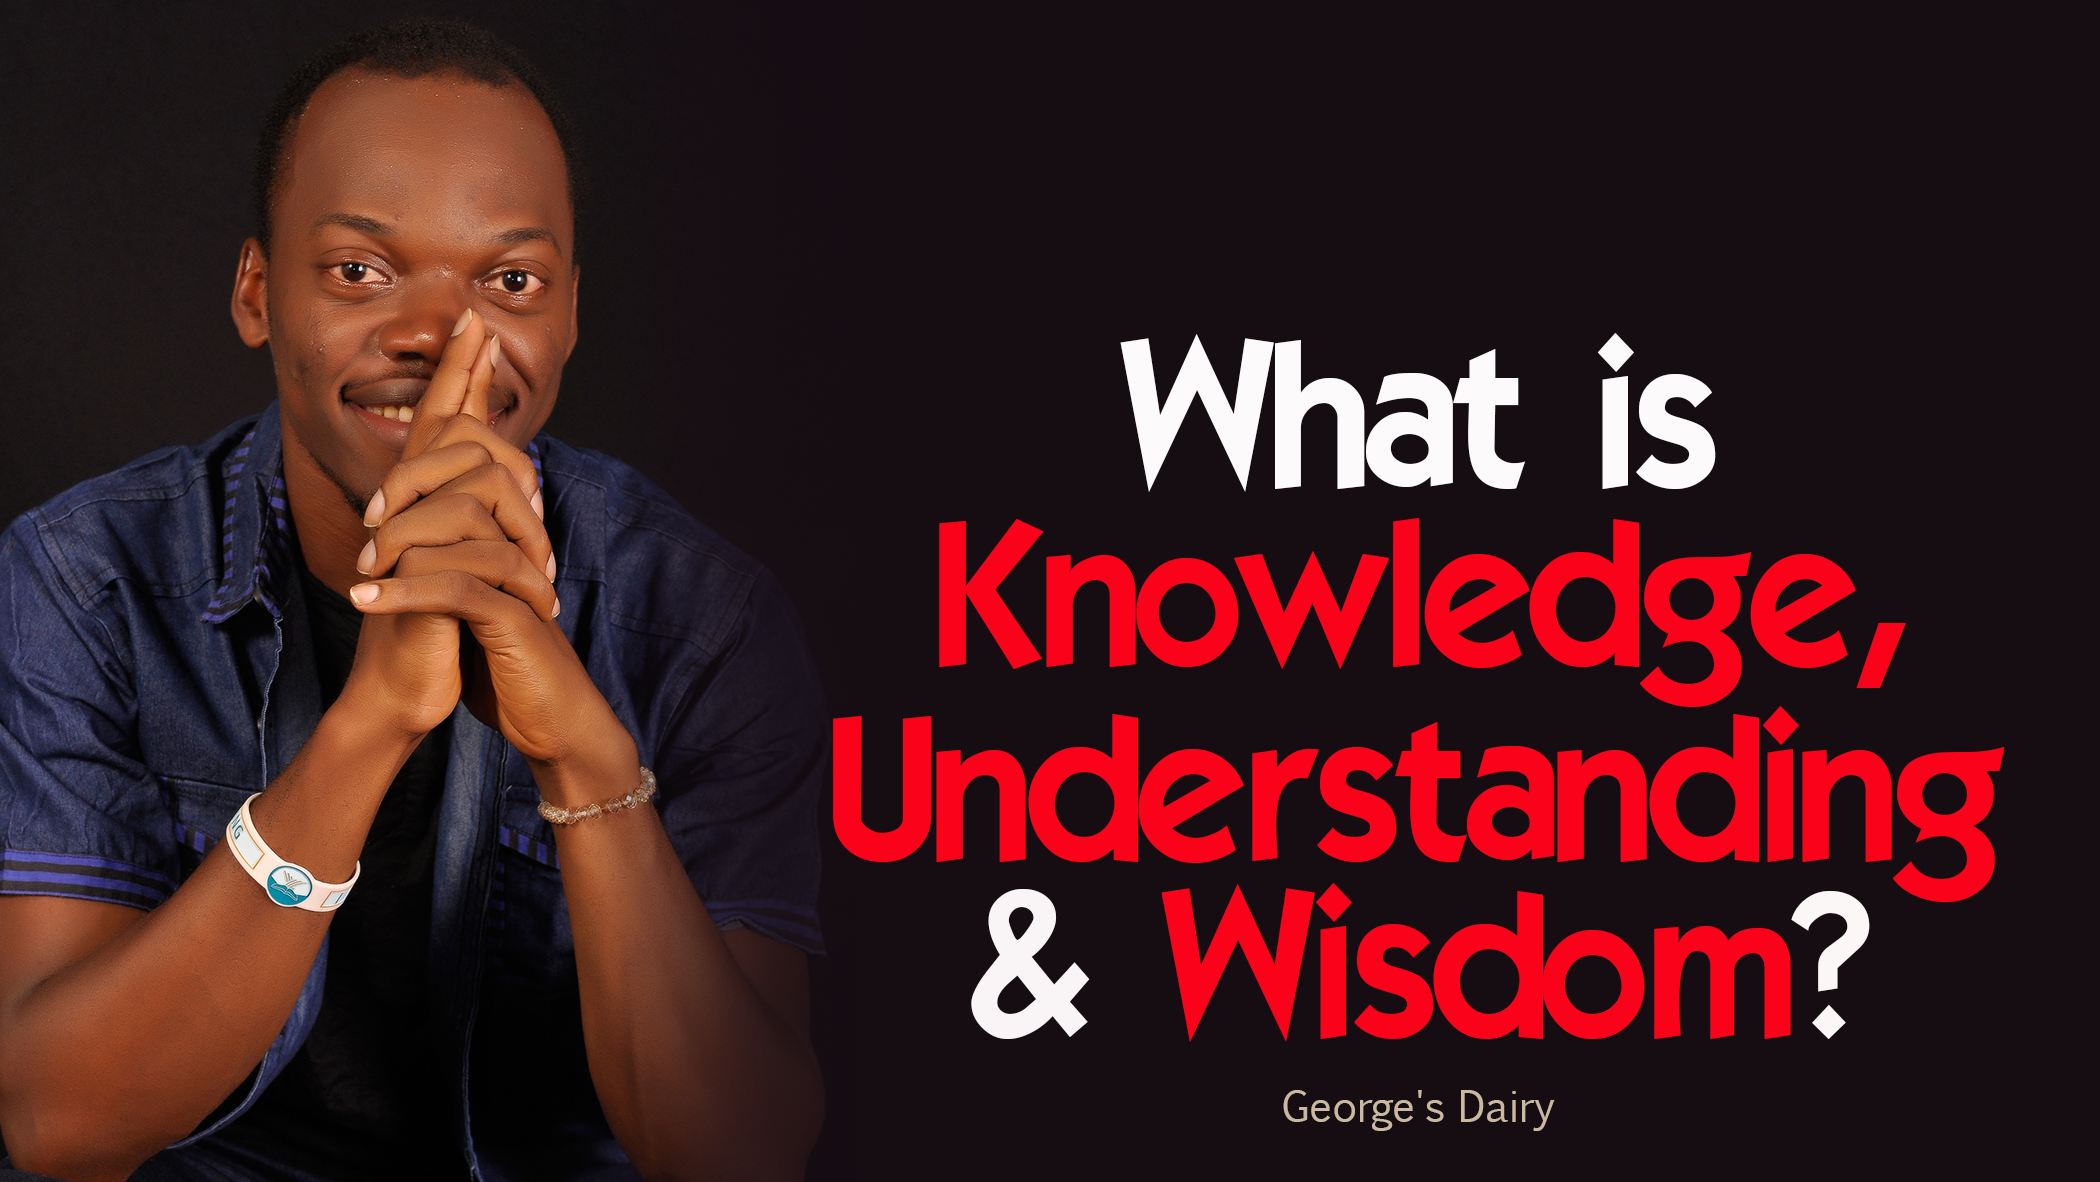 What is knowledge, understanding and wisdom?